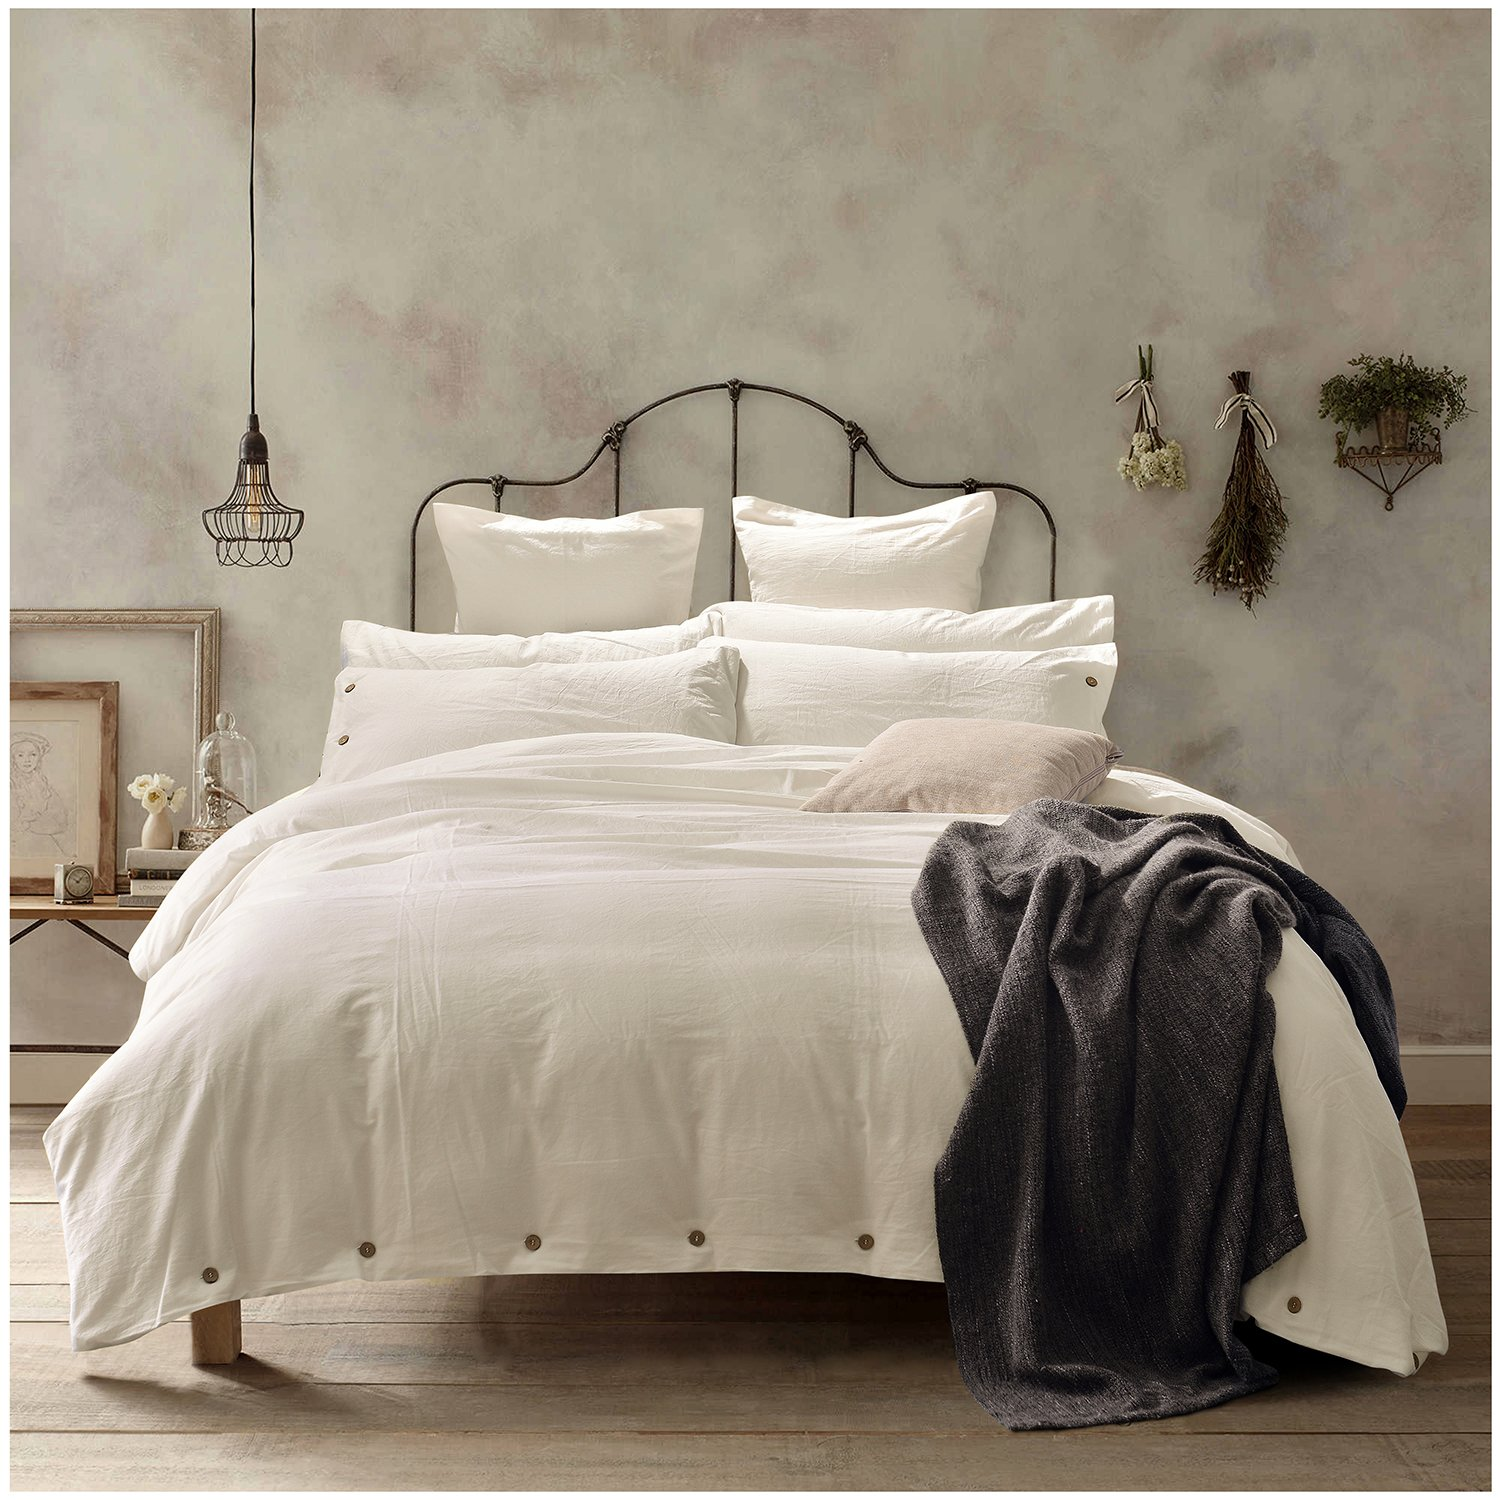 Beautiful Luxury 100% Washed Cotton Off White Bedding Duvet Cover 3 PC Set Queen Size  New